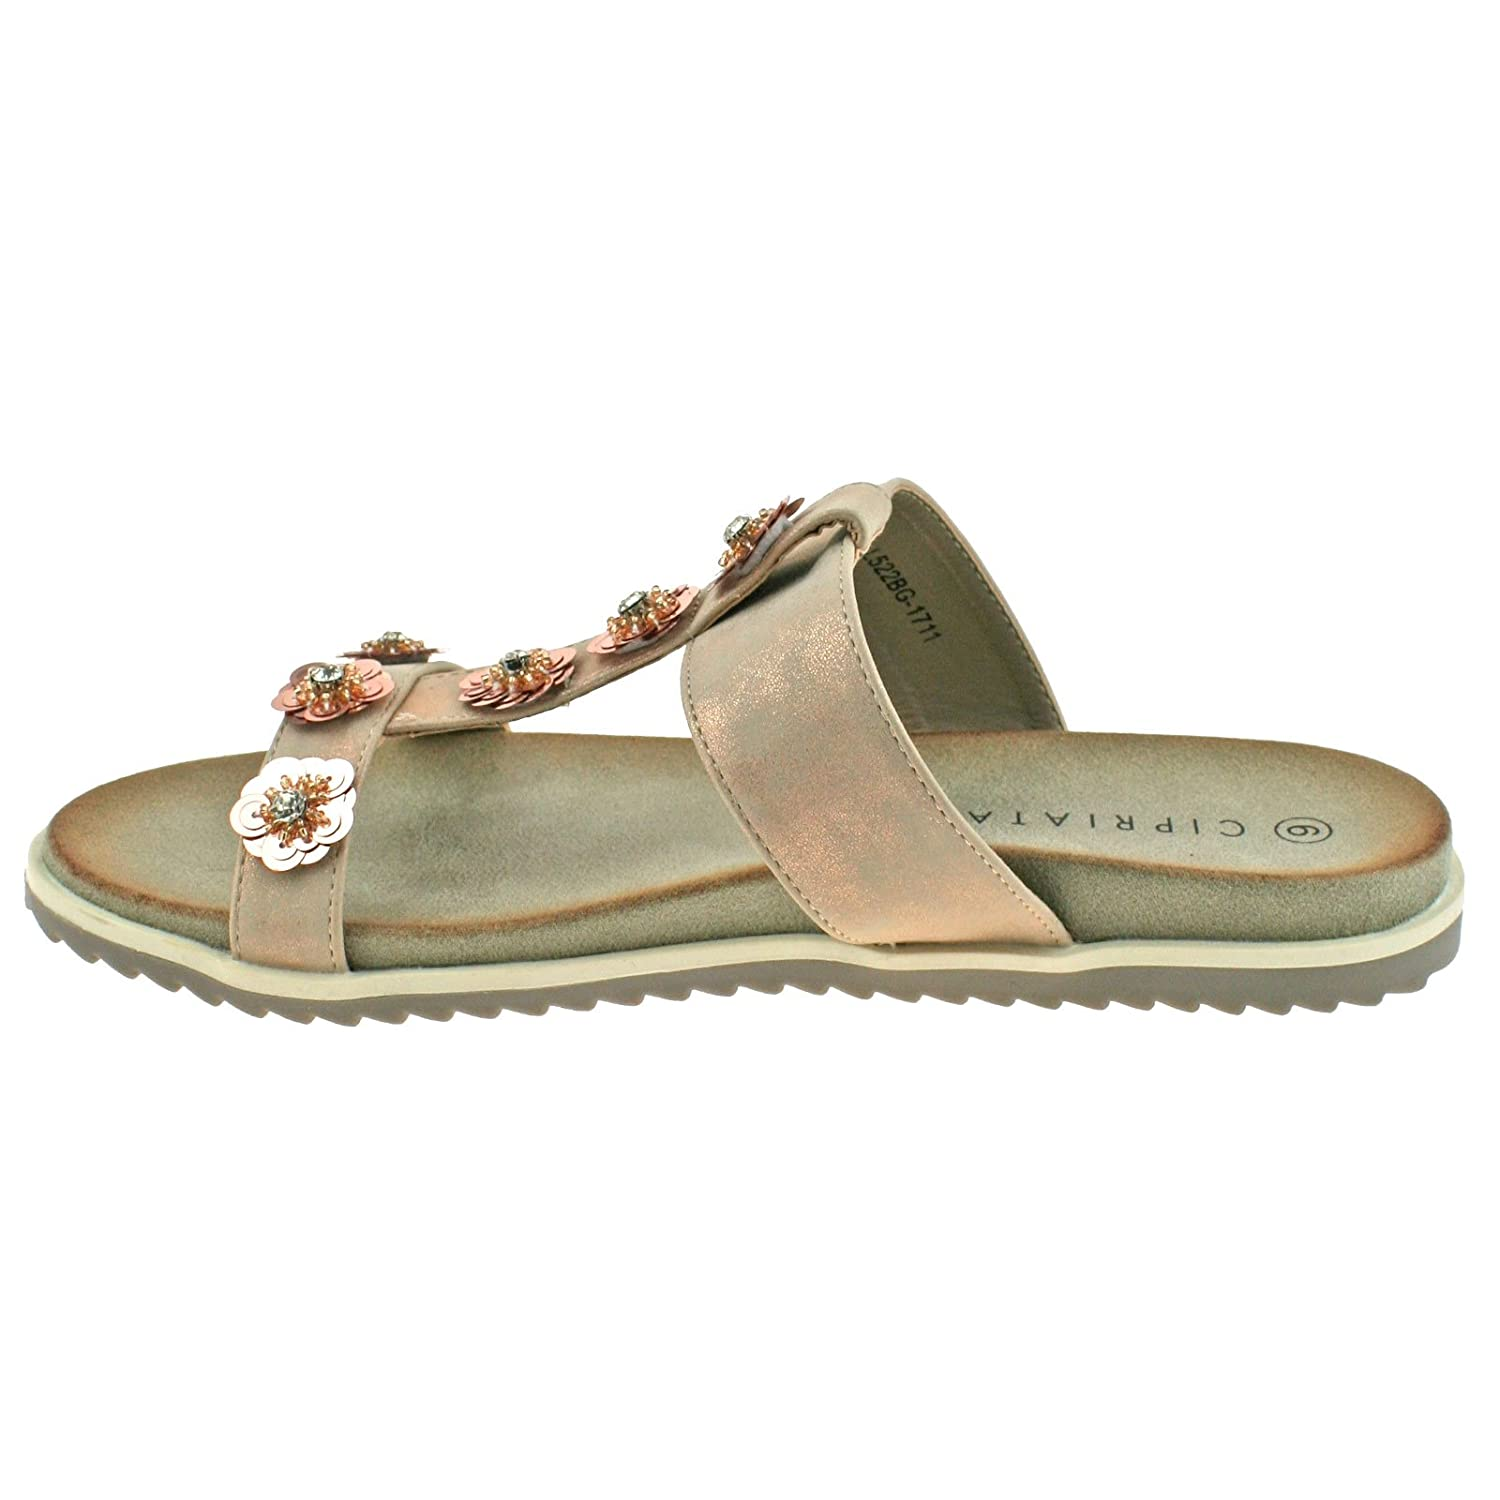 Cipriata Ladies Light Gold Pewter Shimmer Diamante Flower Mule Sandals L522 KD-Pewter-UK 8 (EU 41) OhKjcc60E0